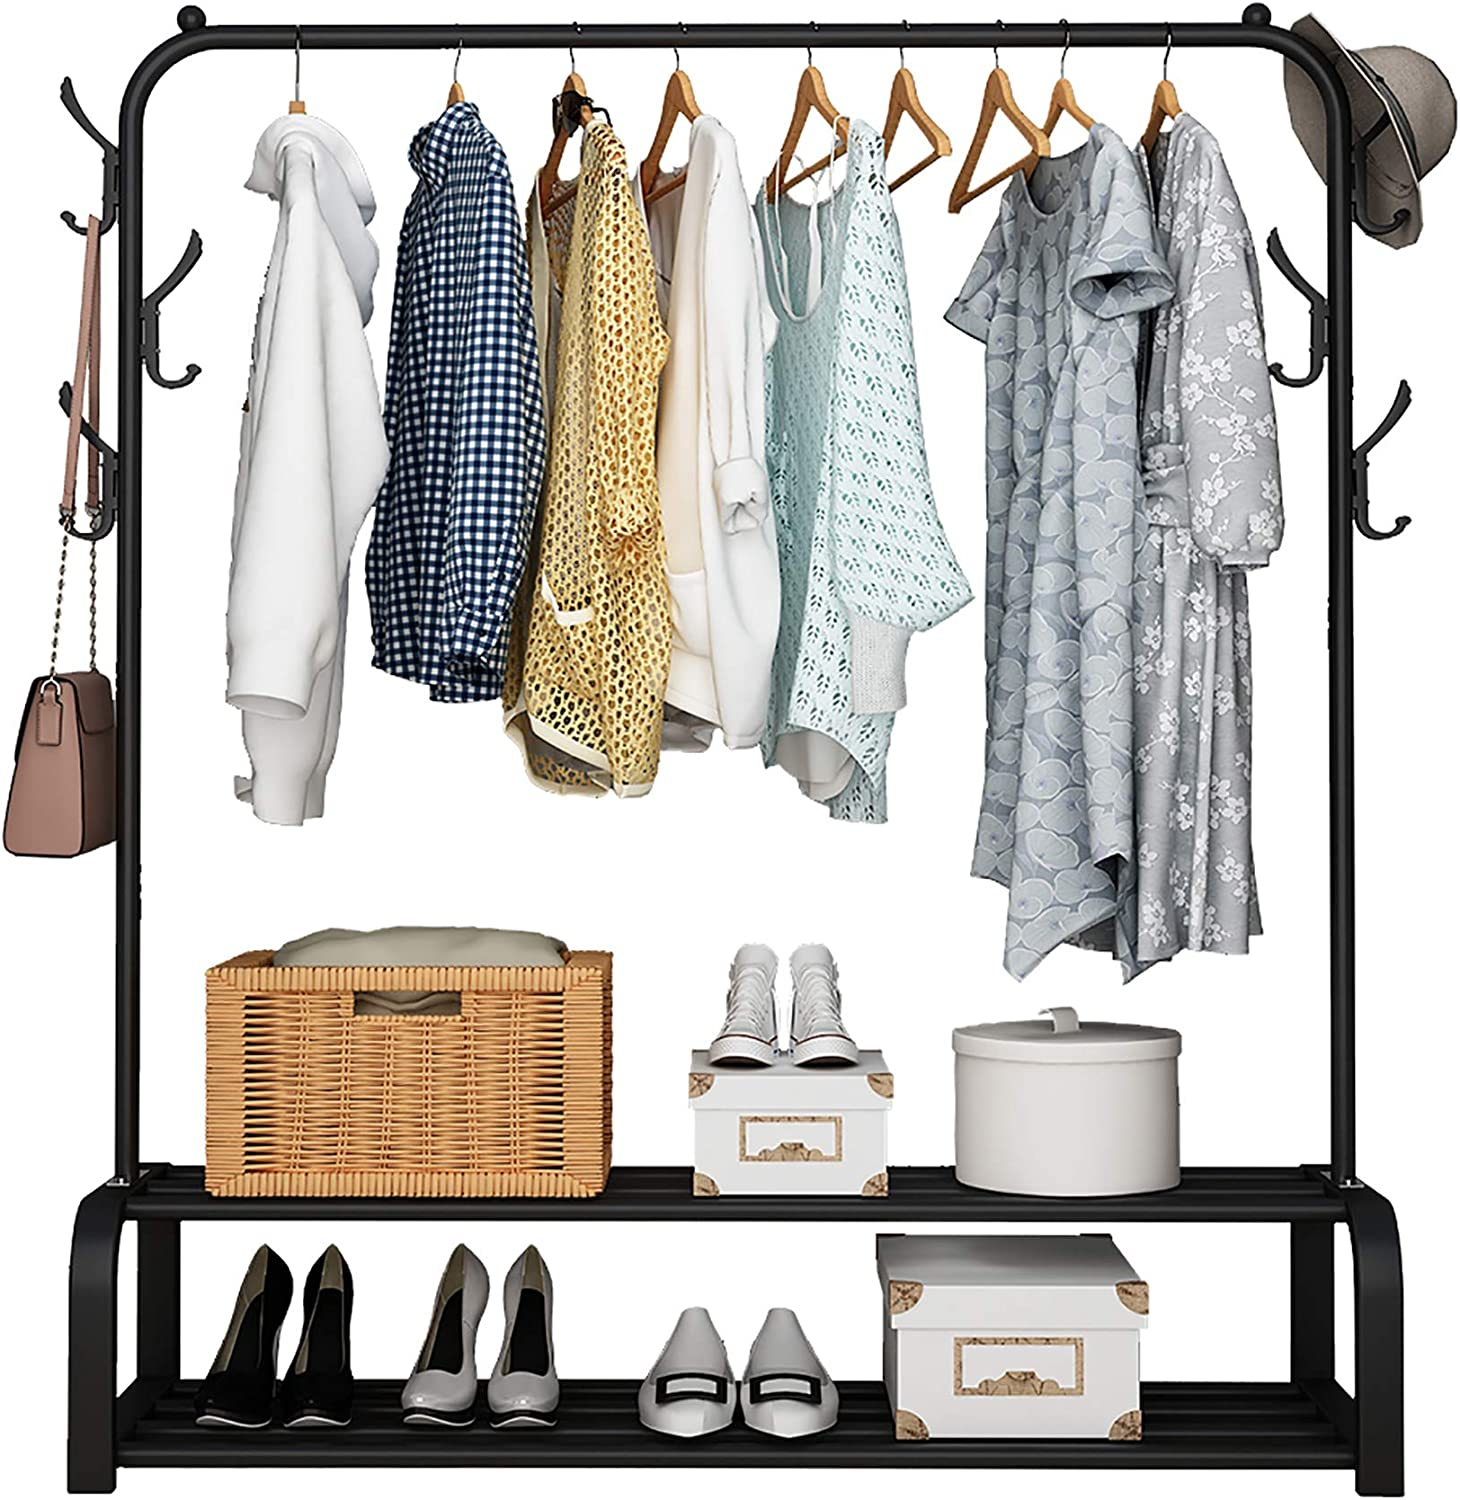 UDEAR Garment Rack Free-standing Clothes Rack with Top Rod,Lower Storage and 6 Hooks,Black